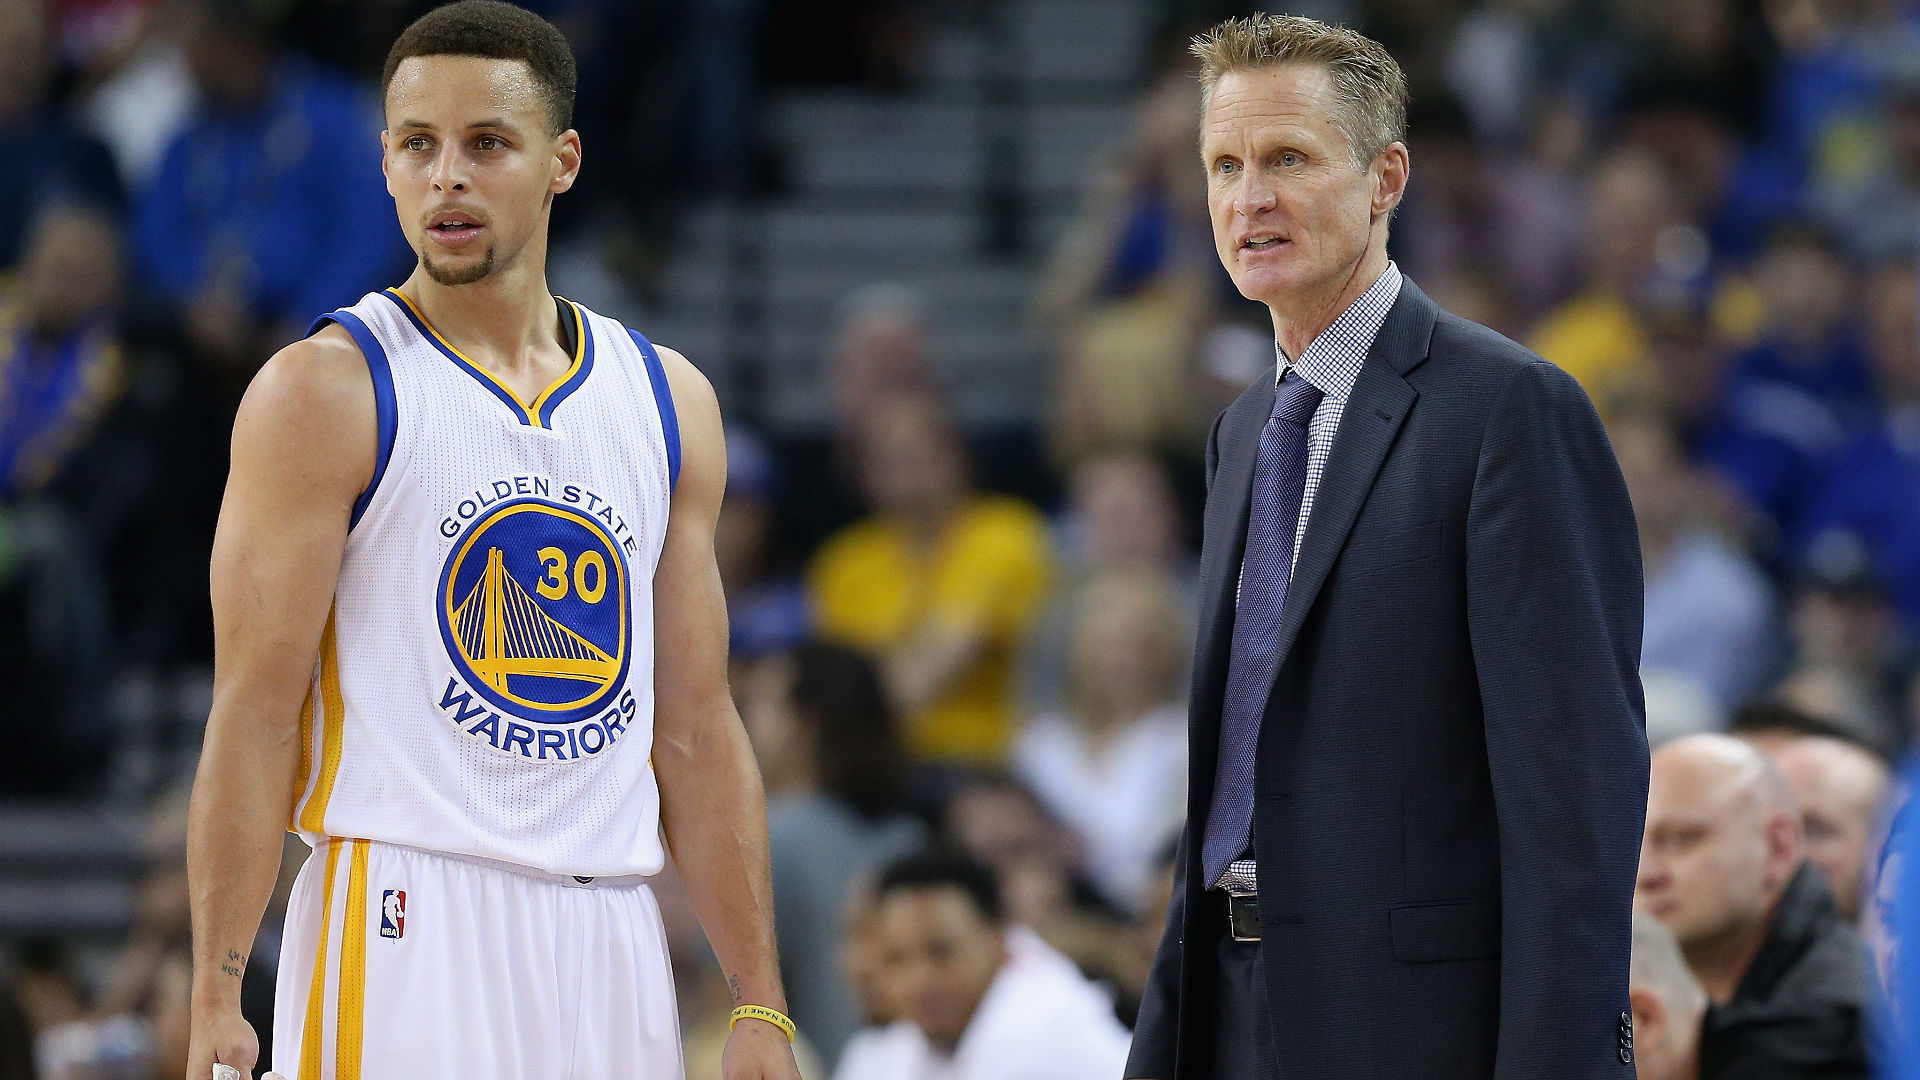 NBA Draft 2019: What will the Warriors do at No. 28?